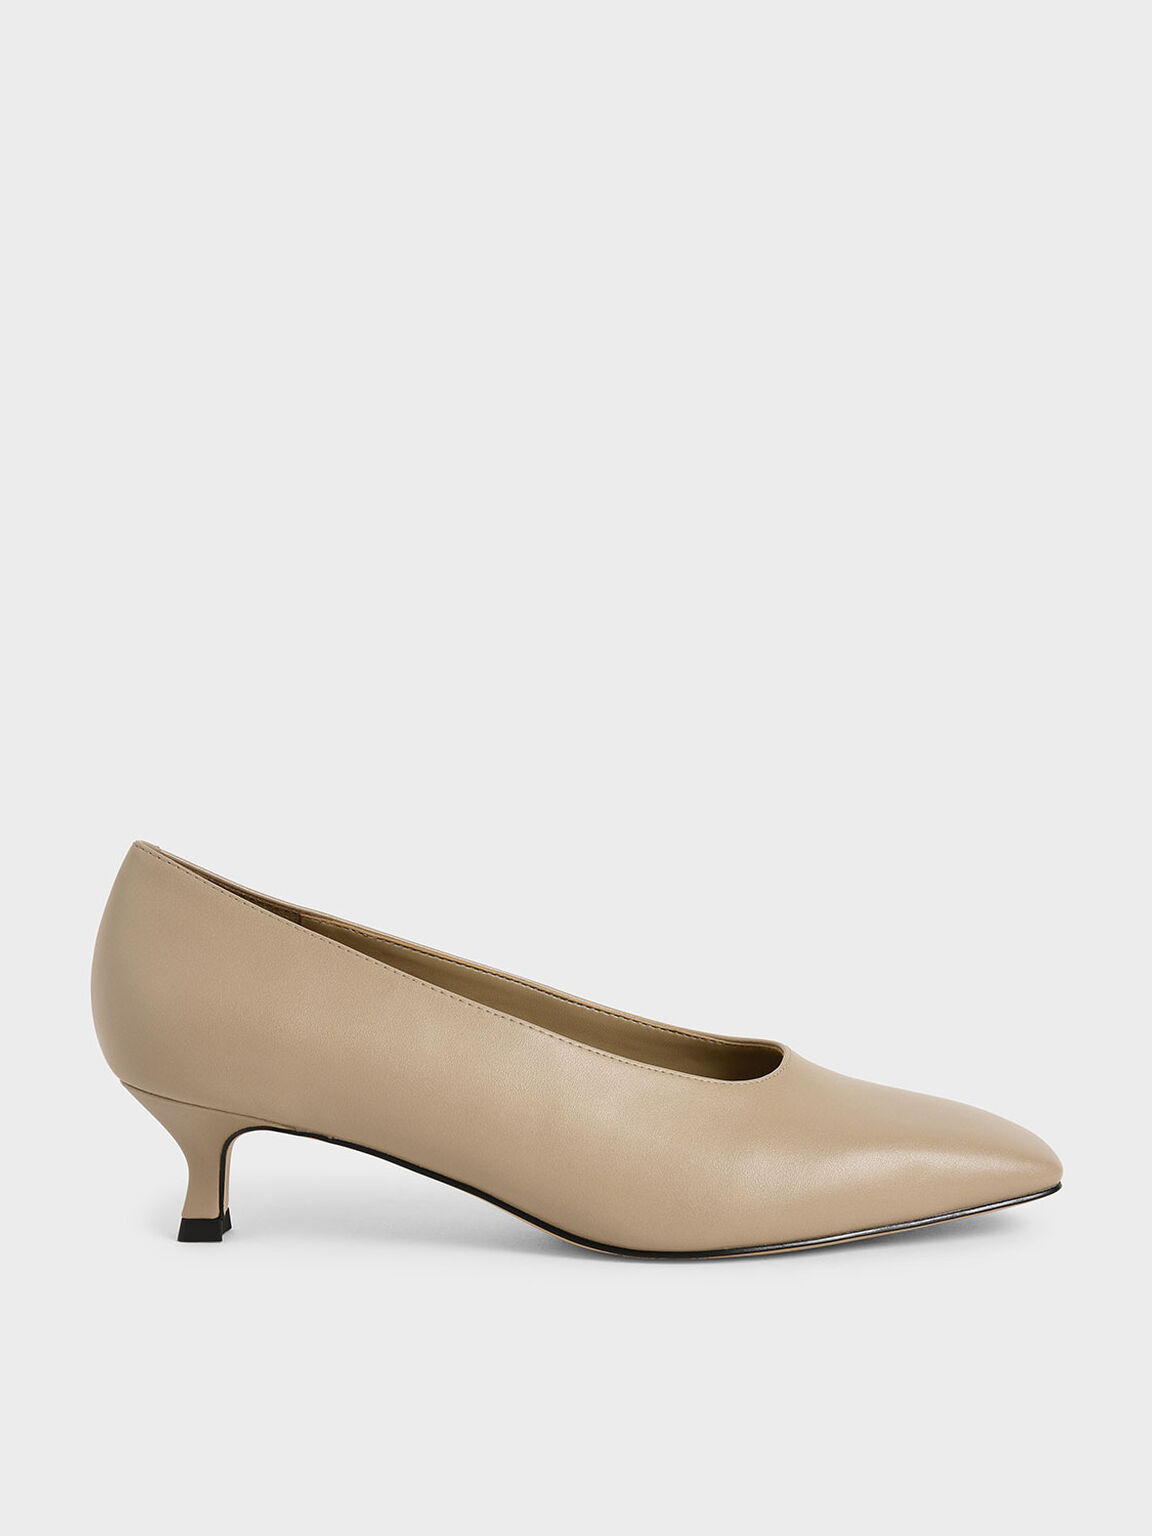 Square Toe Kitten Heel Court Shoes, Beige, hi-res